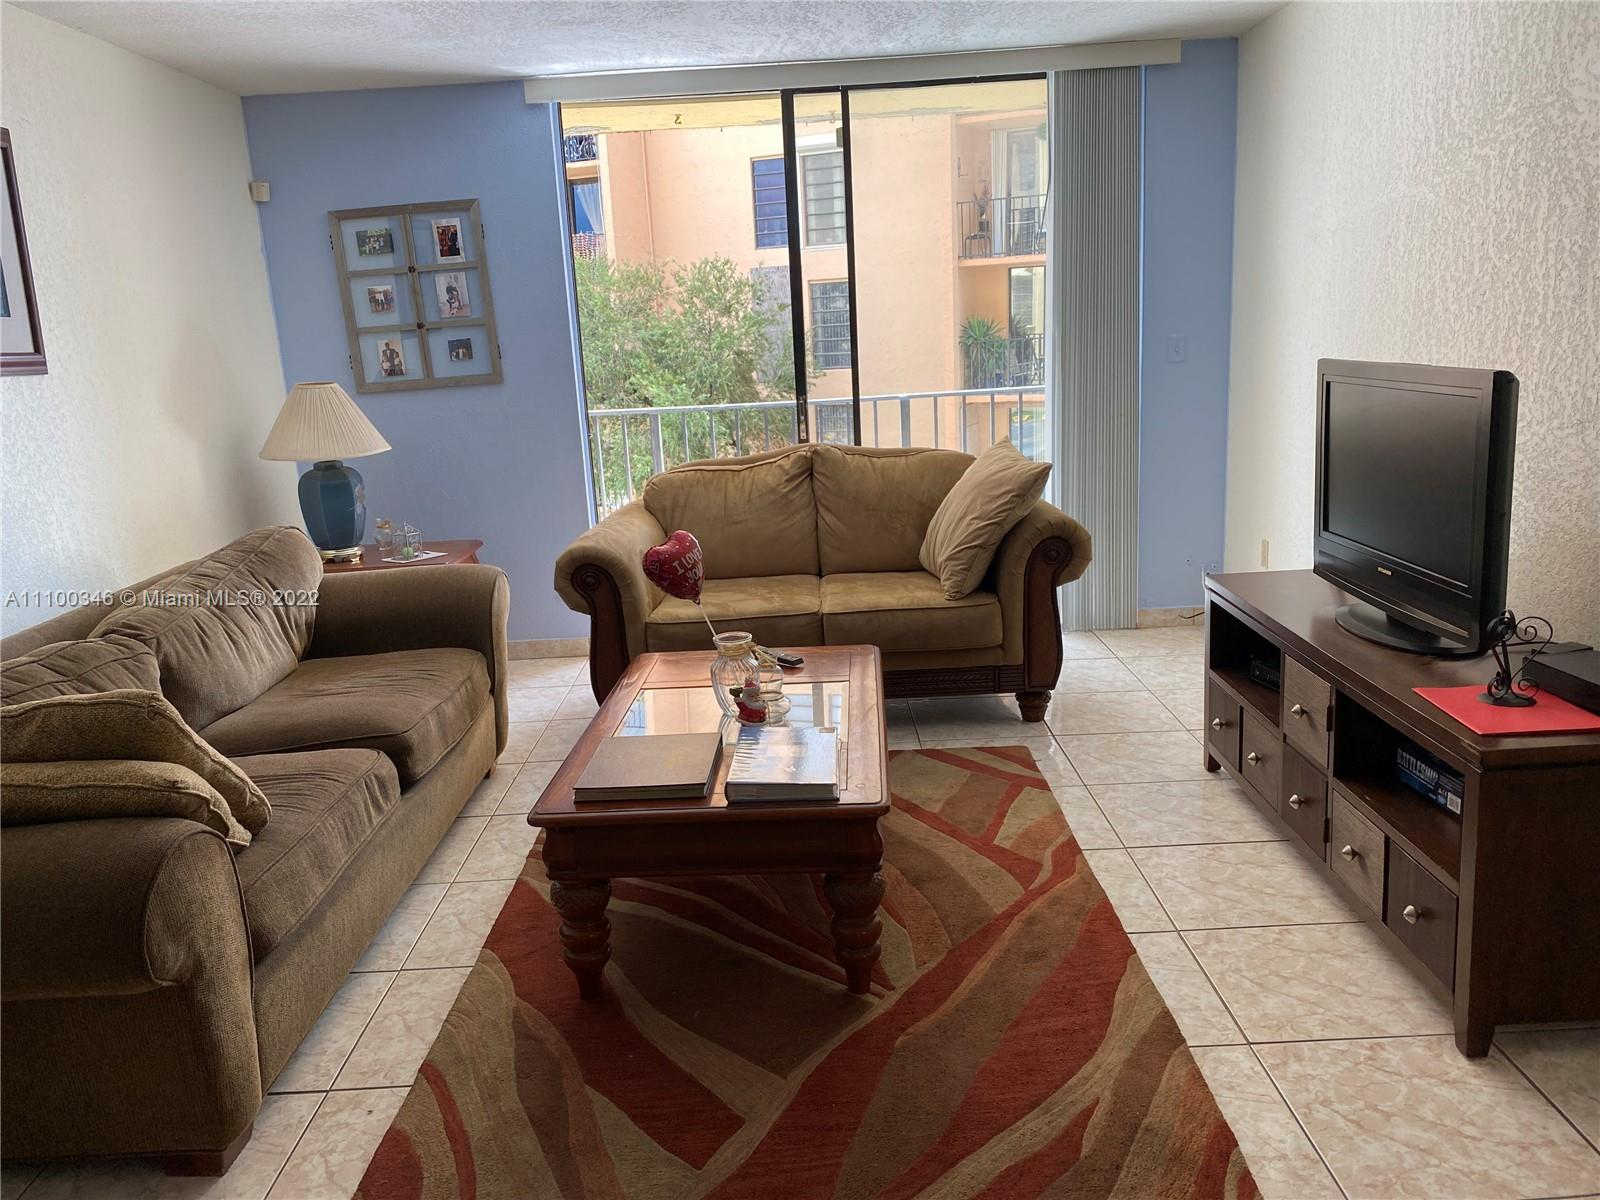 GOLFVIEW CL FONTAINEBLEAU Condo,For Sale,GOLFVIEW CL FONTAINEBLEAU Brickell,realty,broker,condos near me